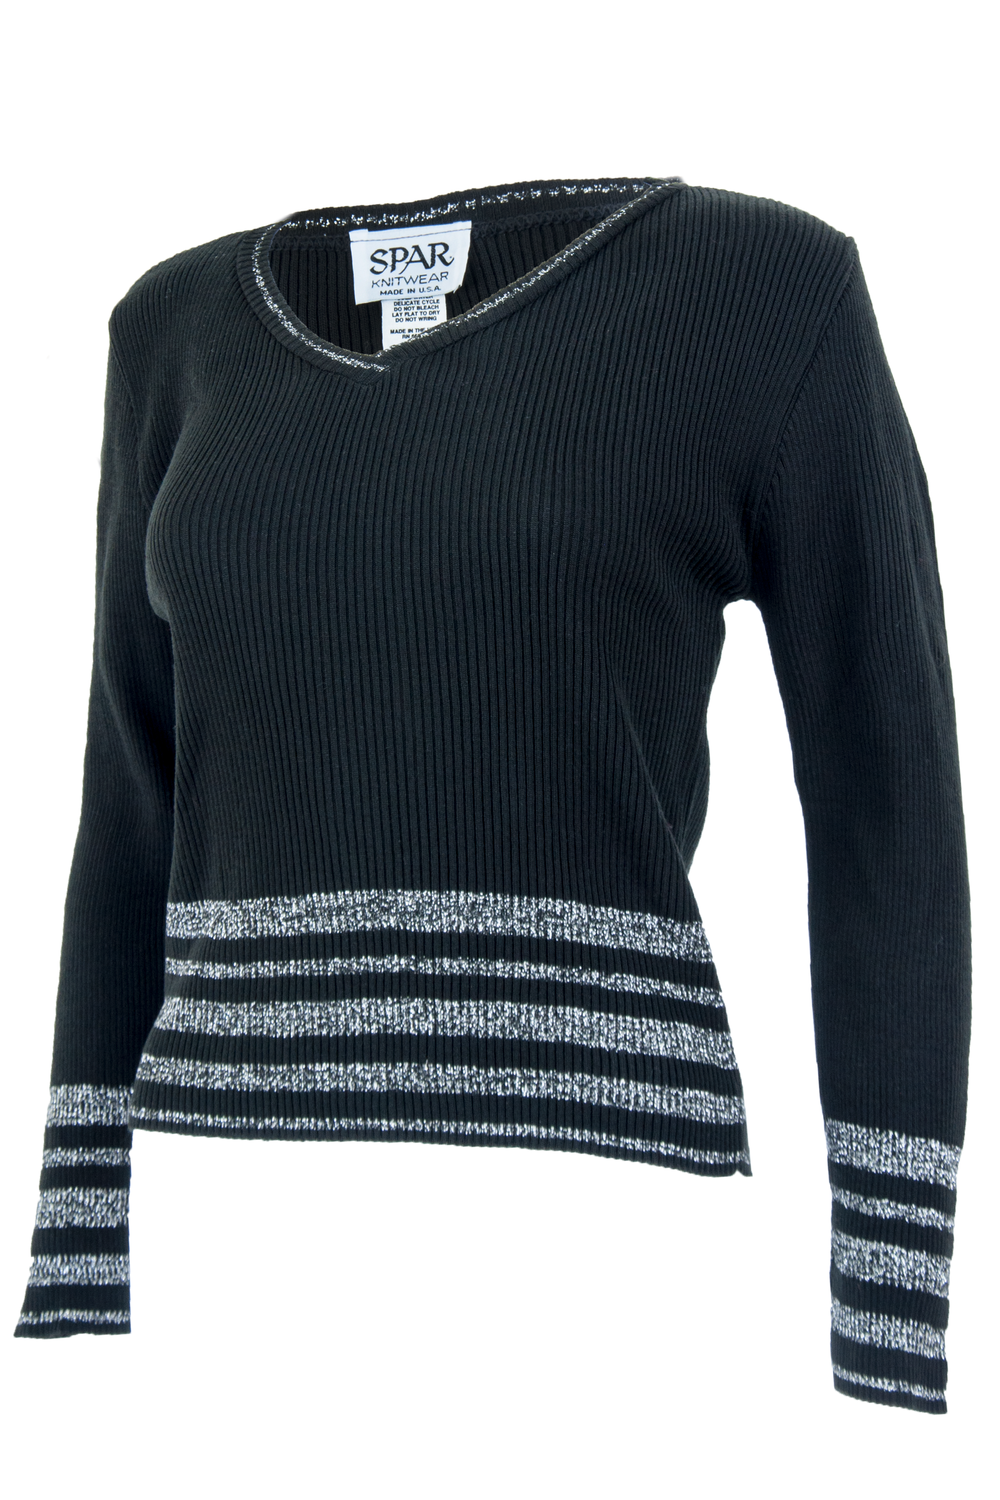 black striped sweater with metallic silver threading and v-neck